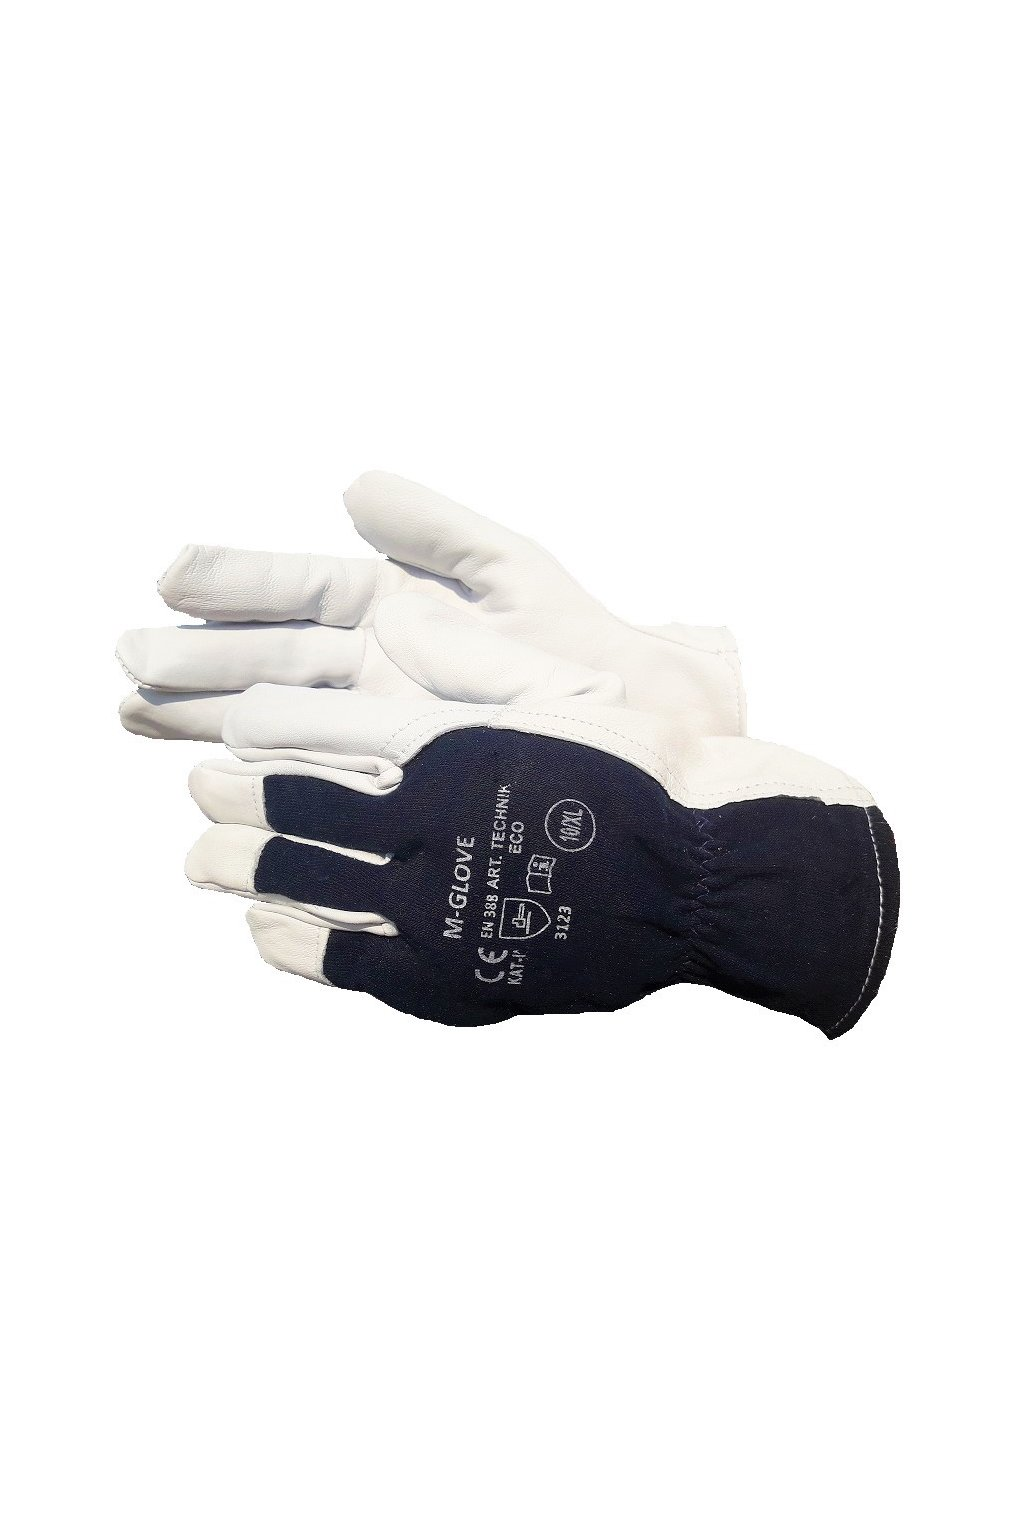 m glove technik eco 3123